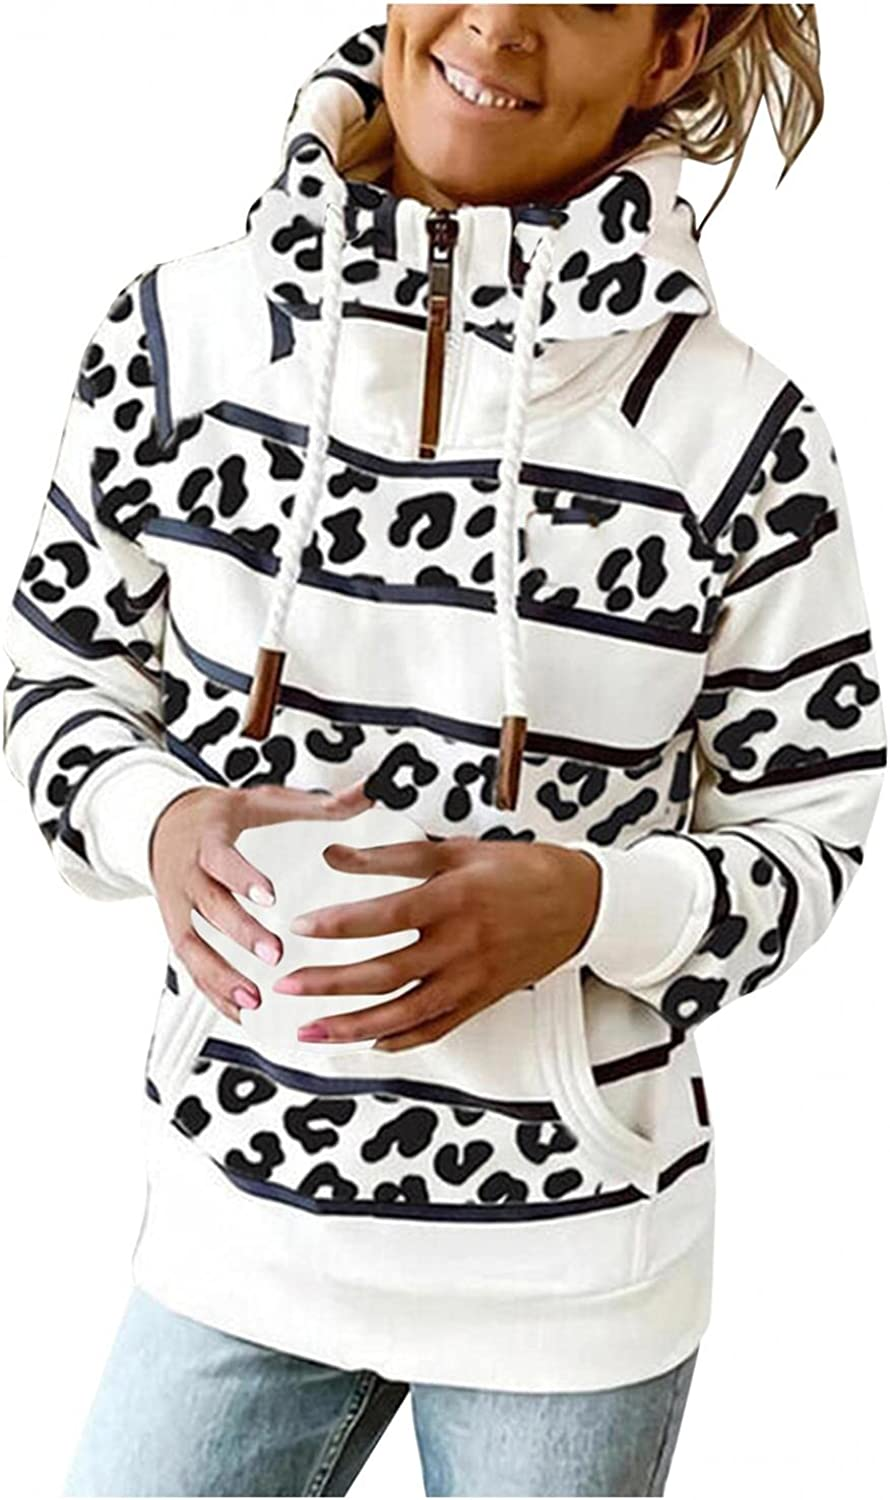 Toeava Fashion Hoodies for Women, Womens Long Sleeve Turtleneck Pullover Blouse Zipper Thermal Sweatshirt with Pockets